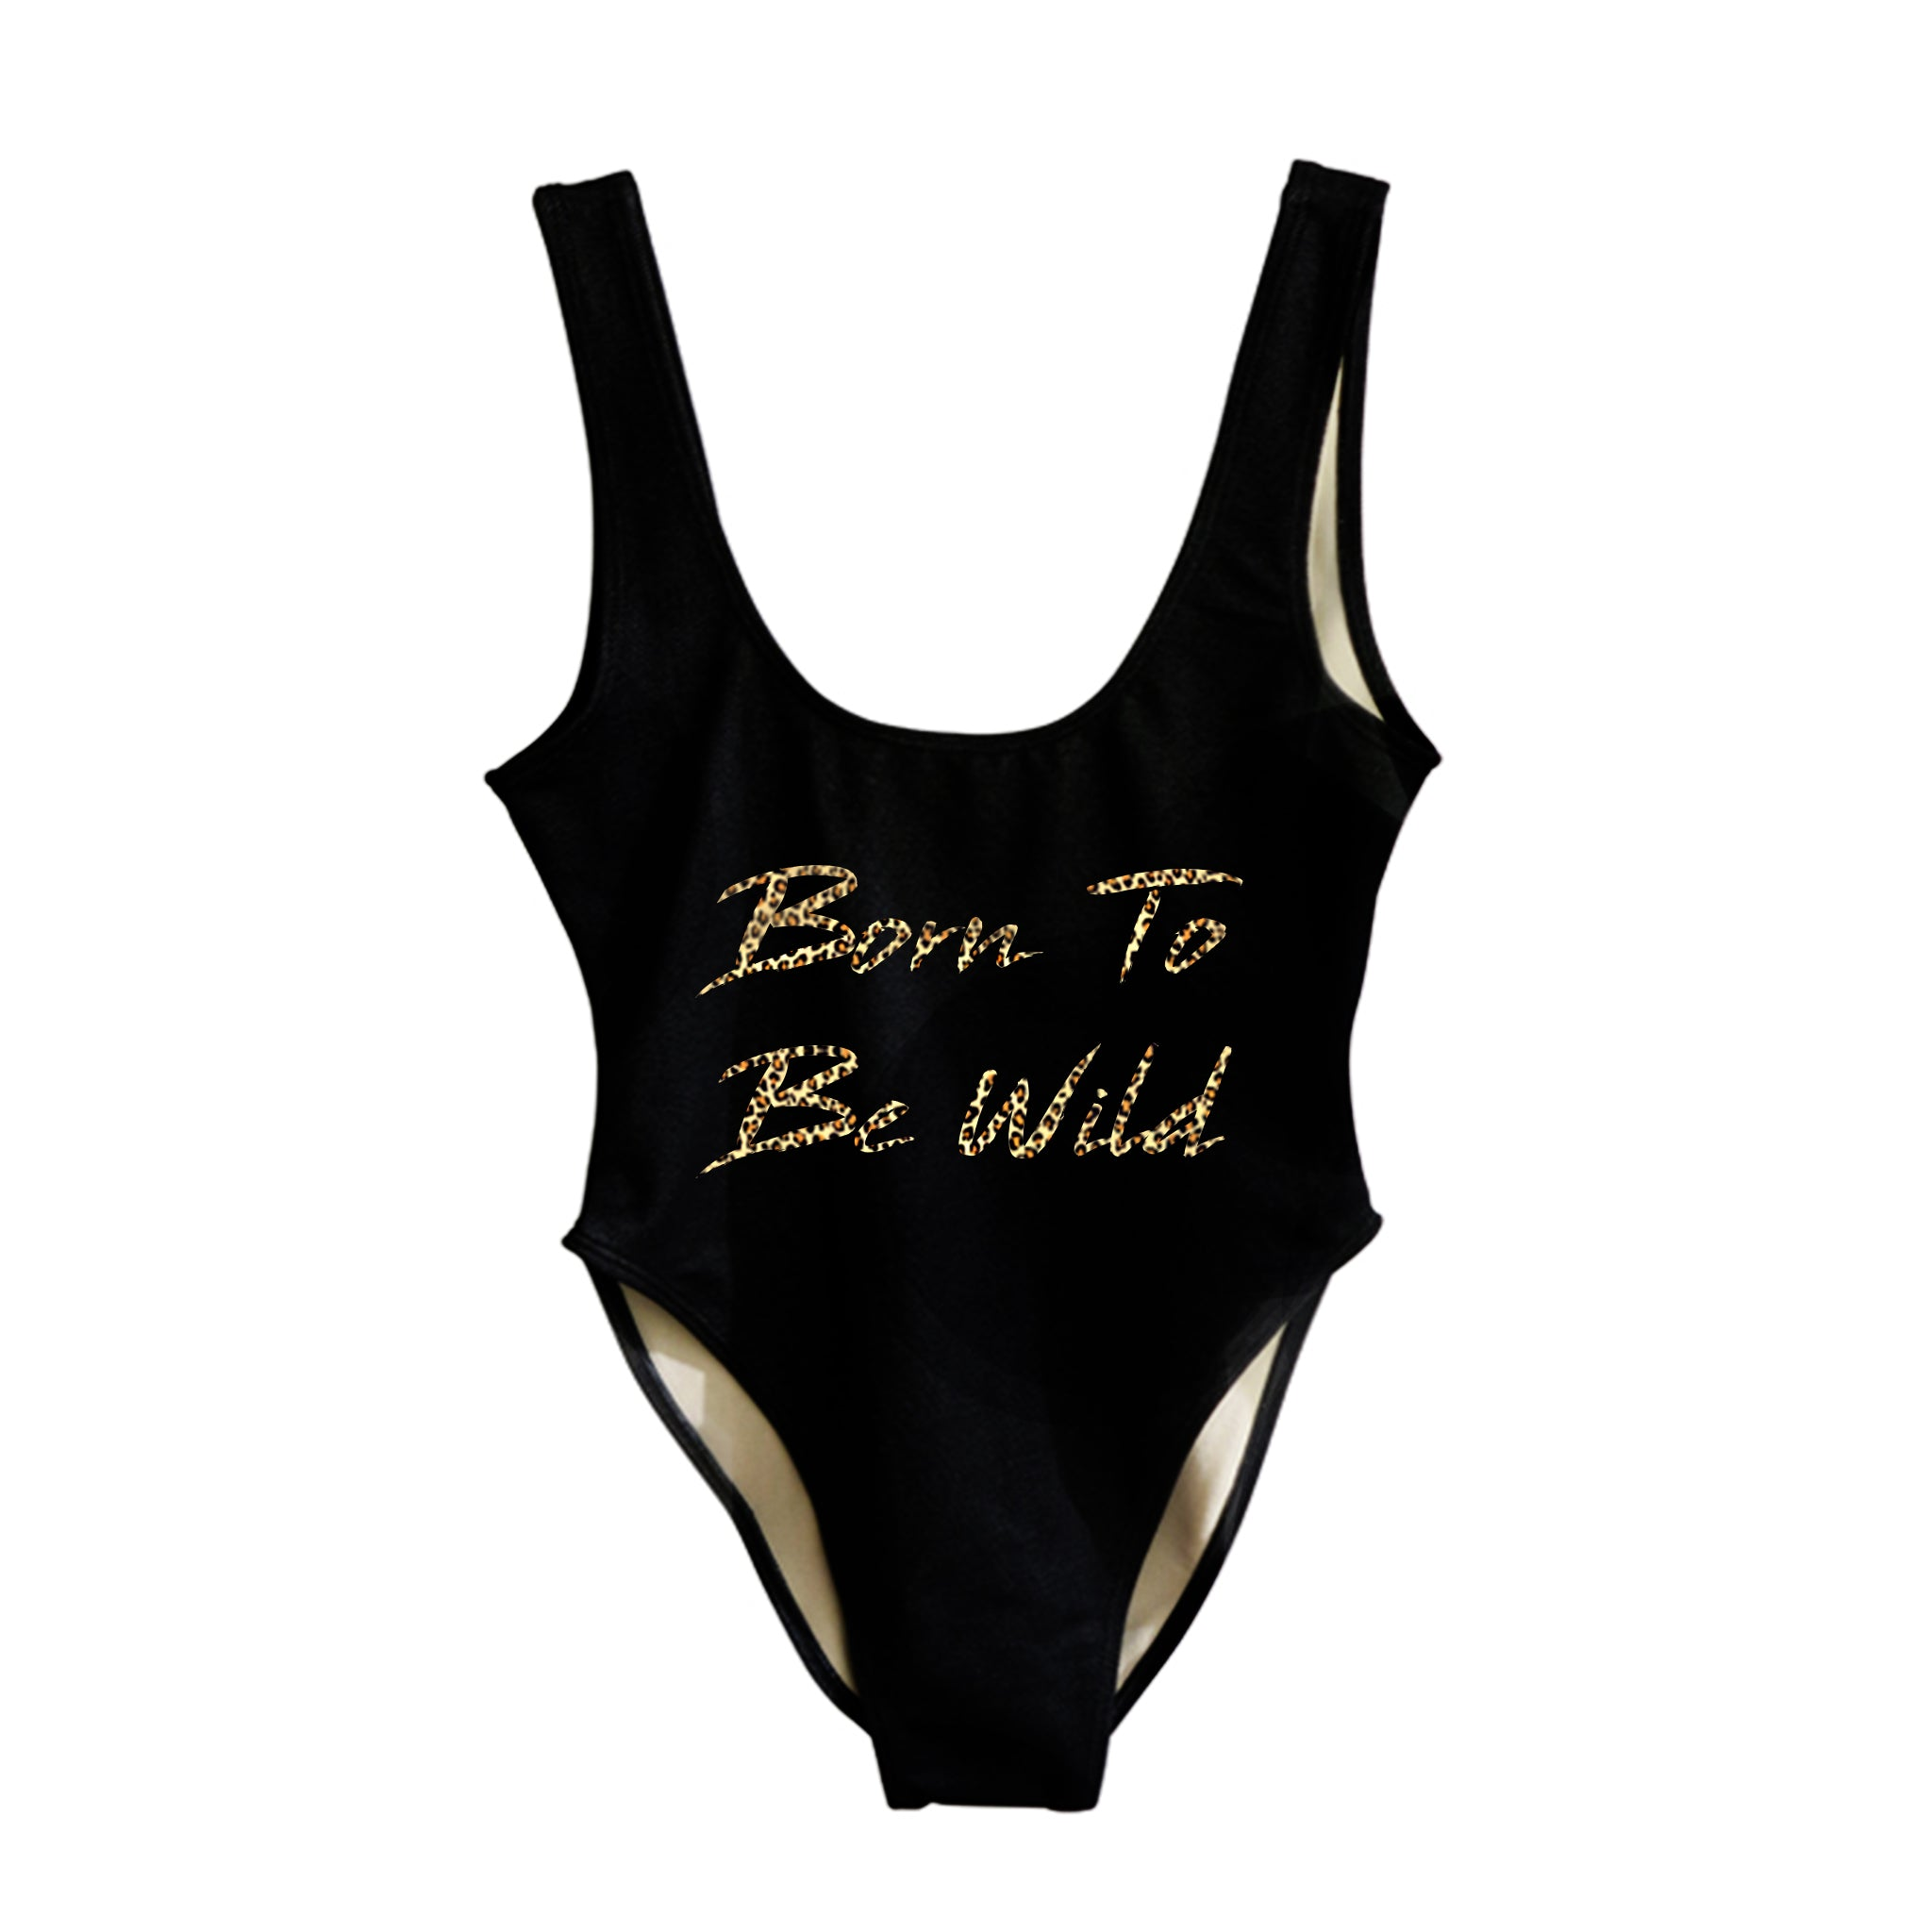 BORN TO BE WILD W/ CHEETAH TEXT  [SWIMSUIT]